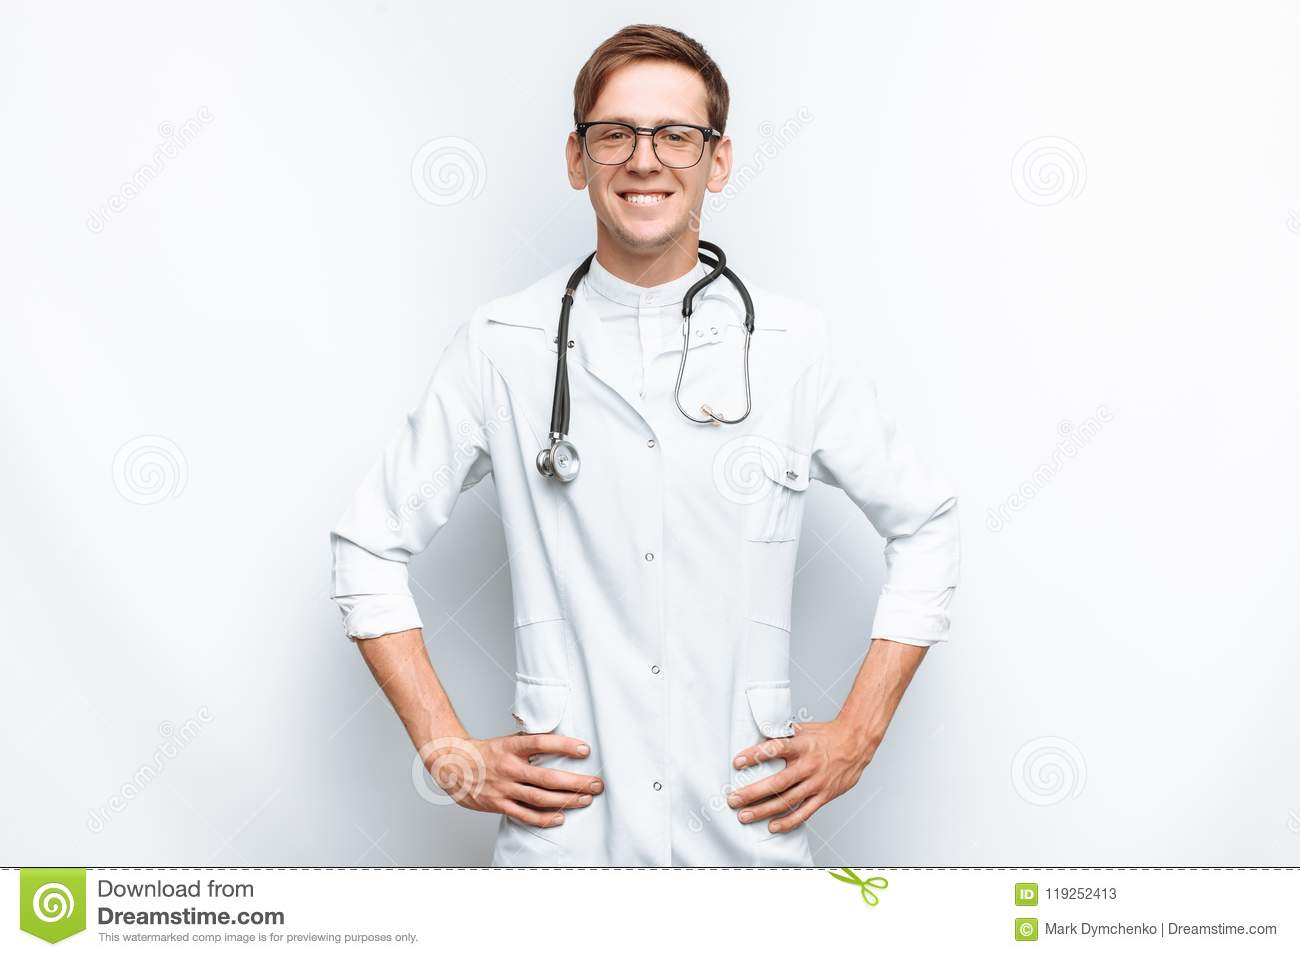 Portrait of a young doctor on a white background, Intern in the Studio, with a stethoscope on the neck